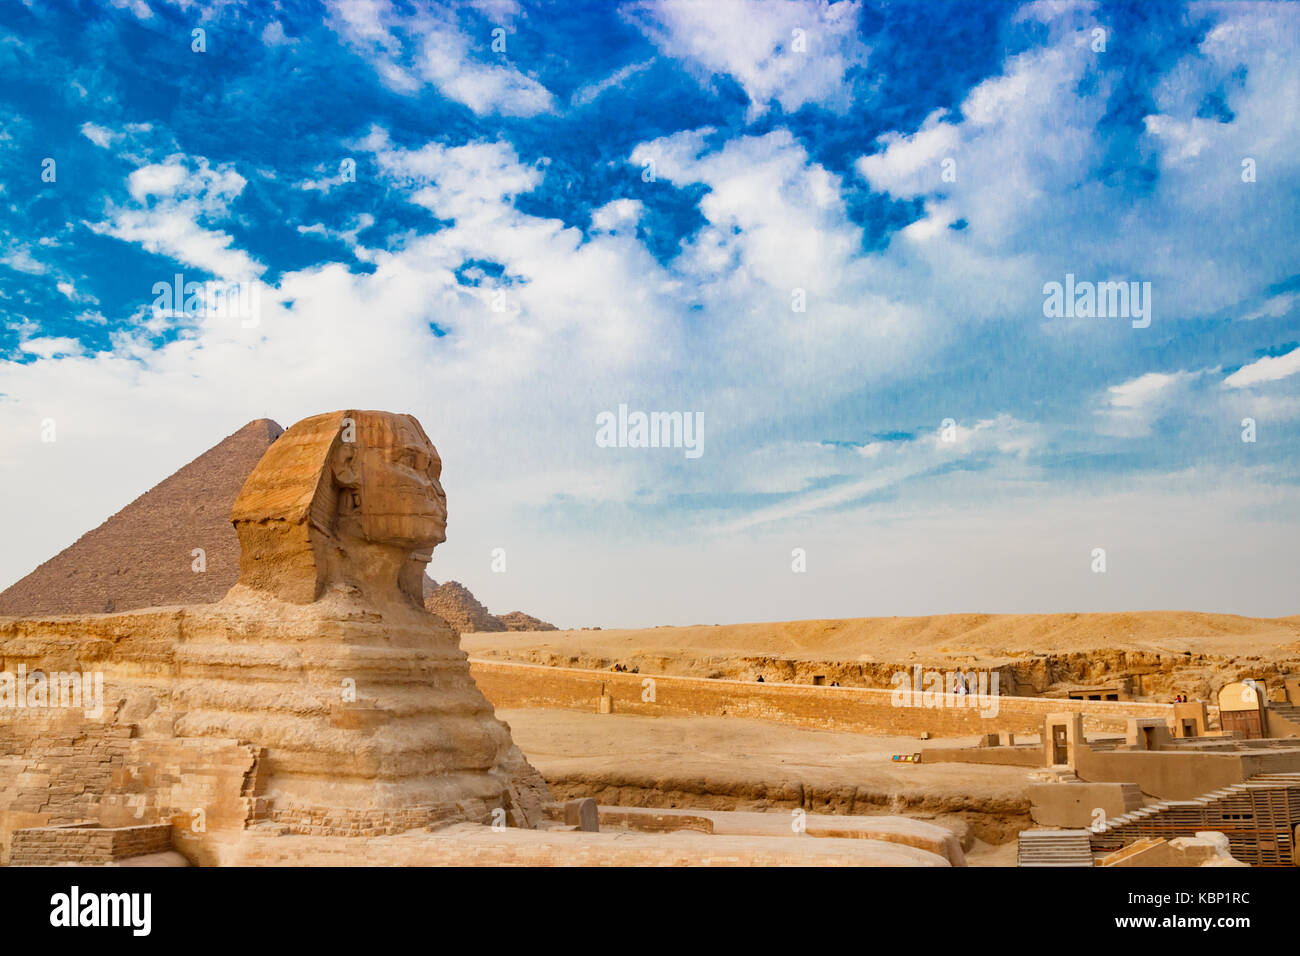 The sphinx in Cairo, Egypt - Stock Image